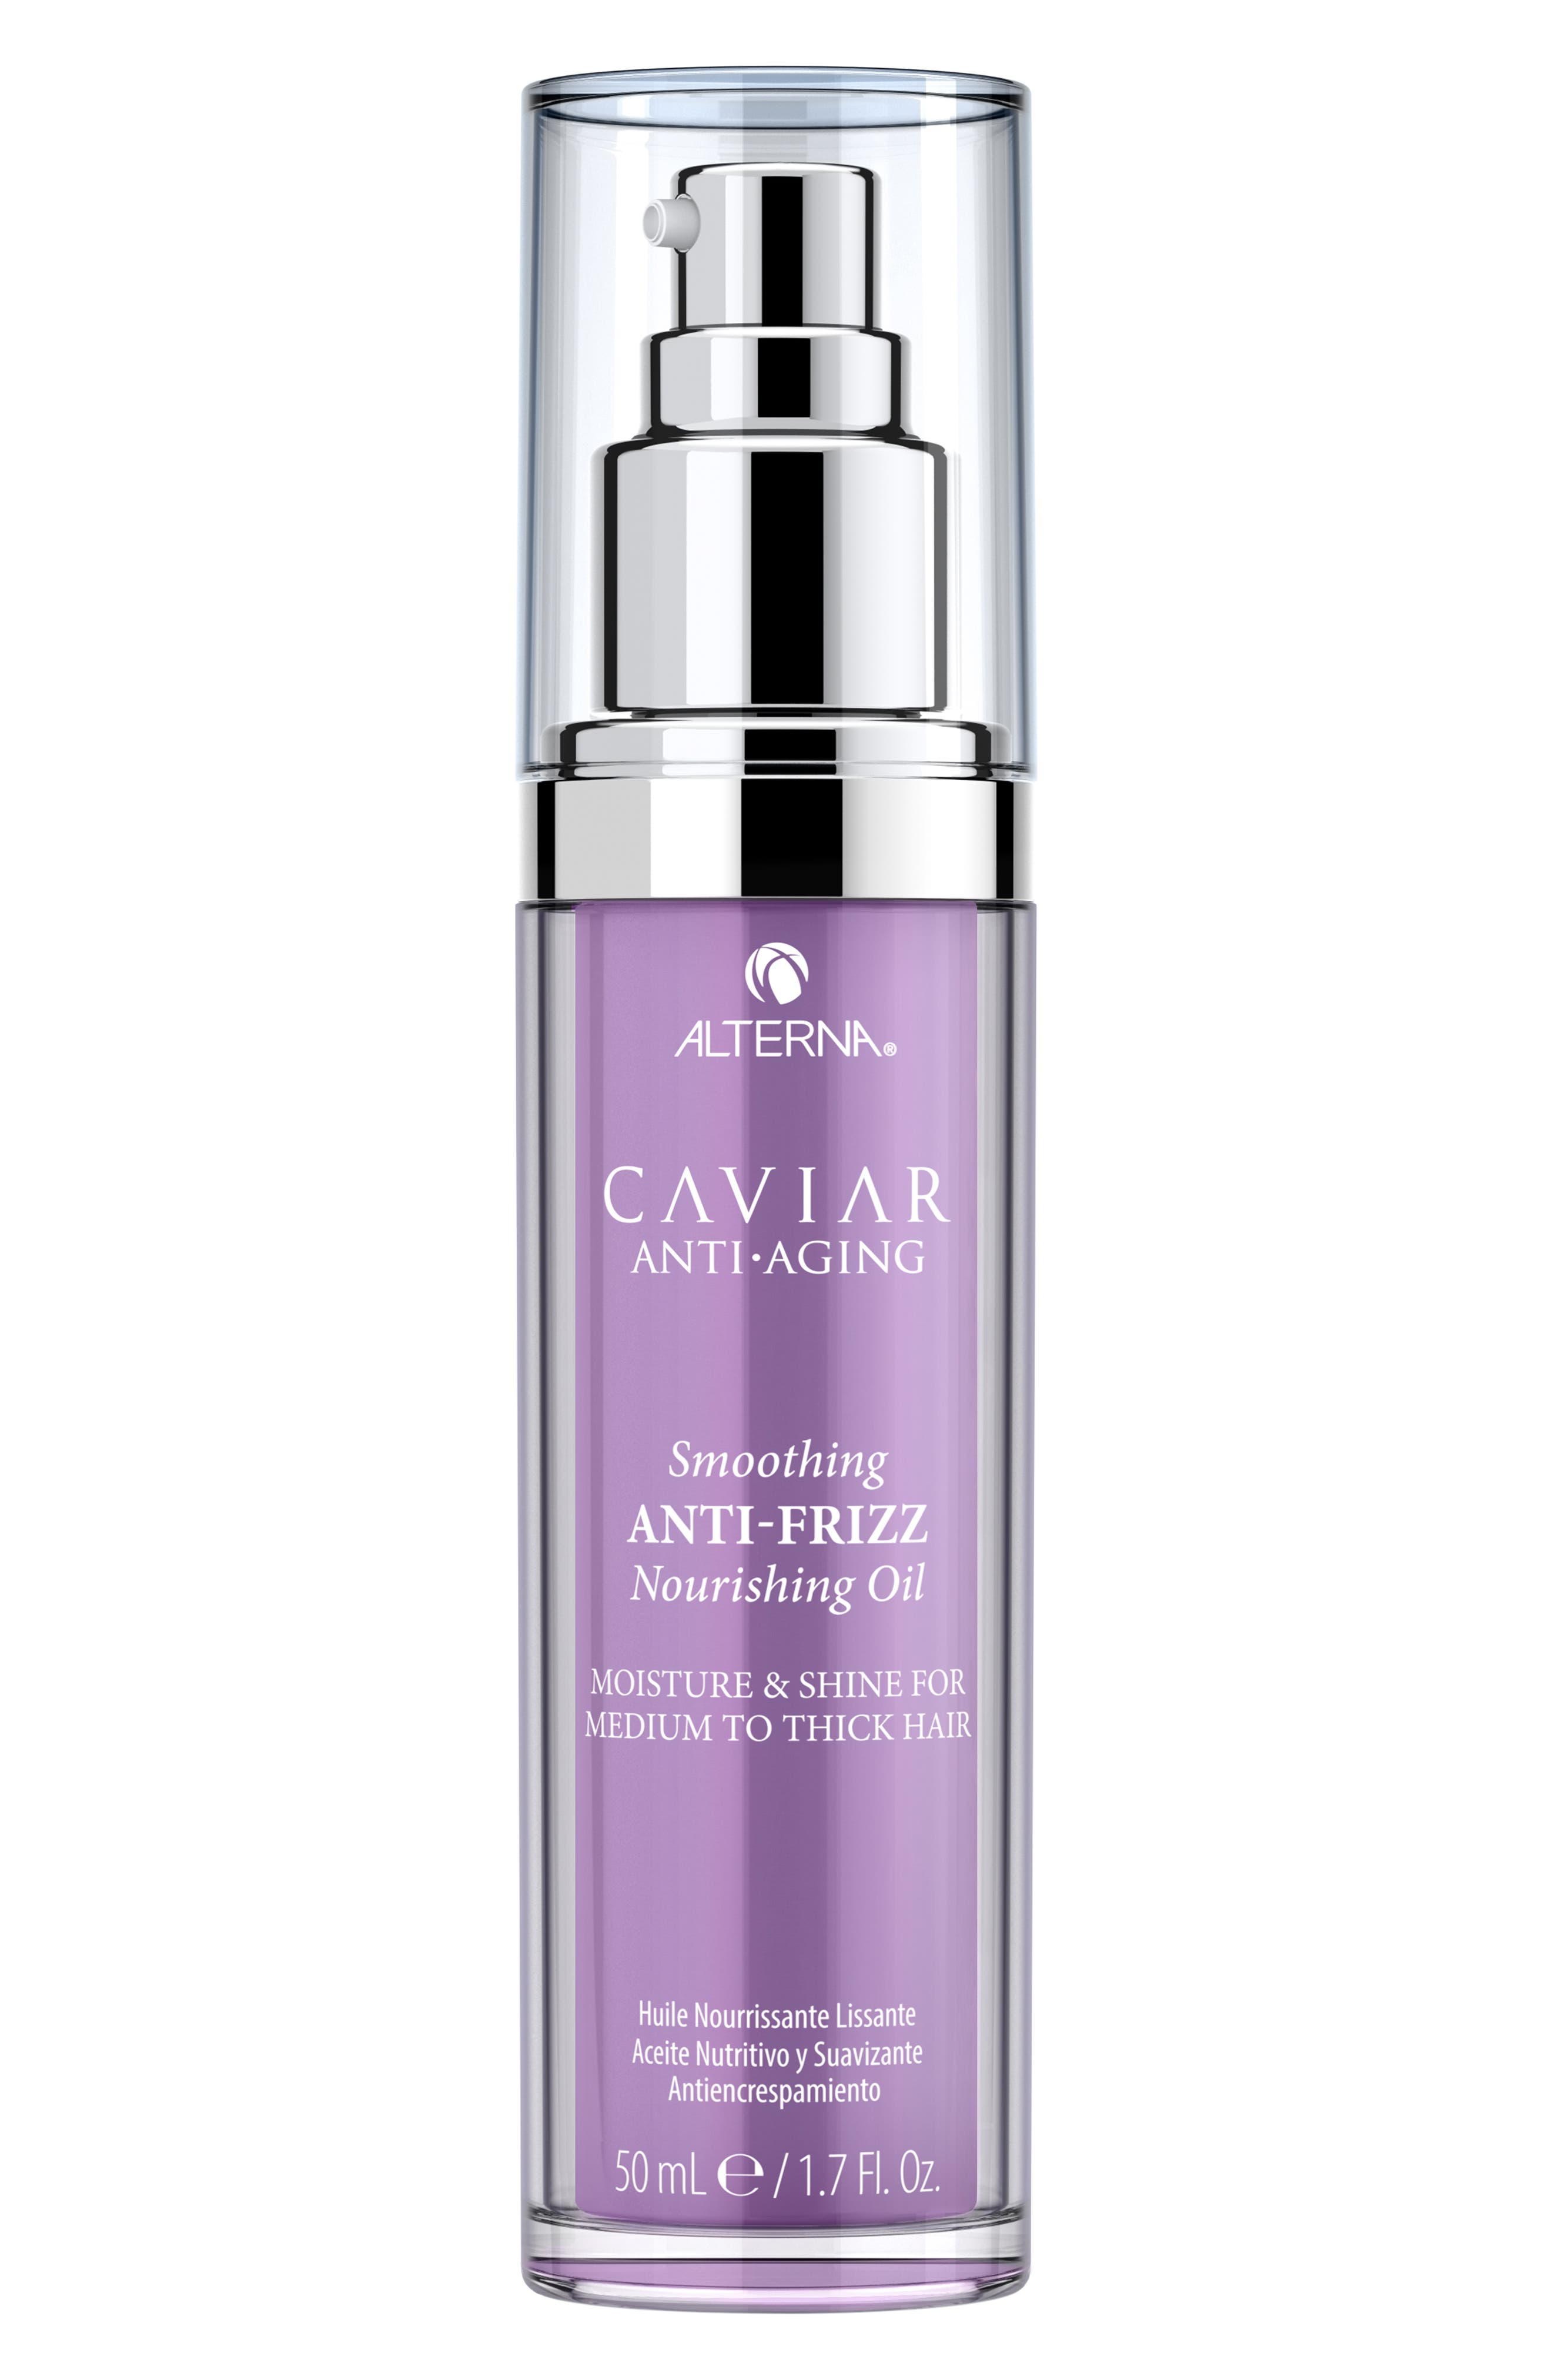 Caviar Anti-Aging Smoothing Anti-Frizz Nourishing Oil,                             Main thumbnail 1, color,                             NO COLOR